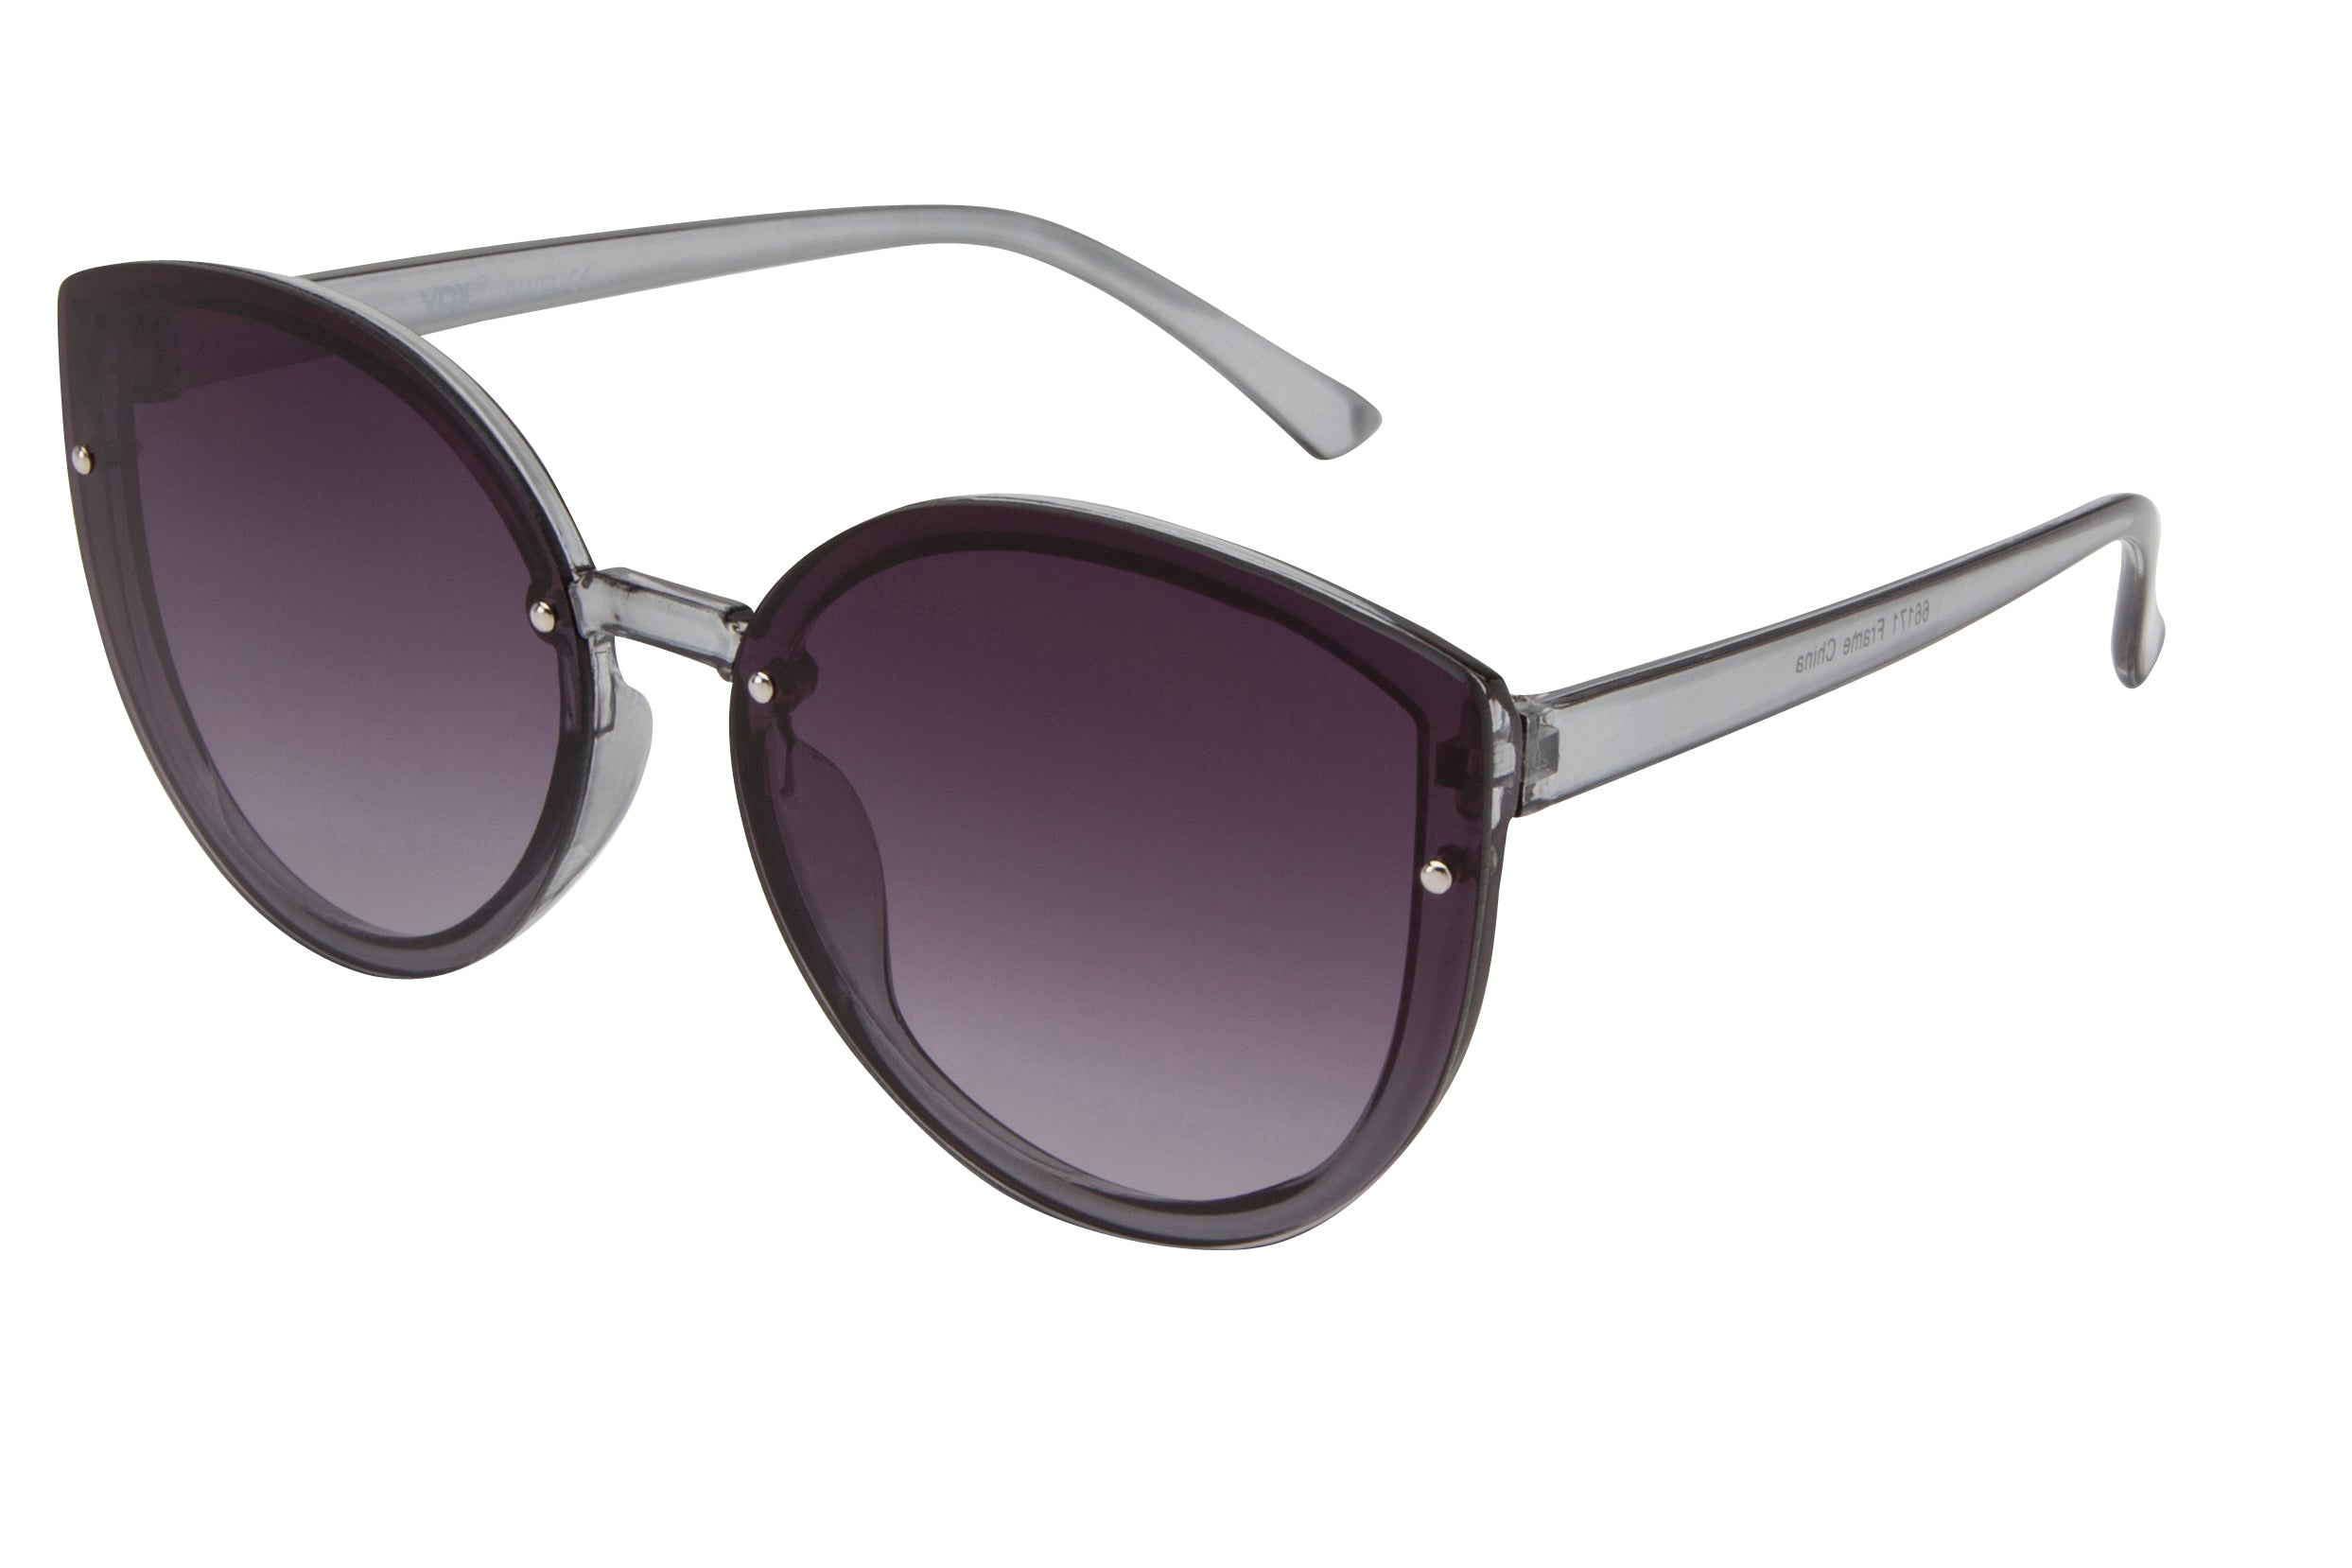 66171 - Vox Women's PC Fashion Sunglasses